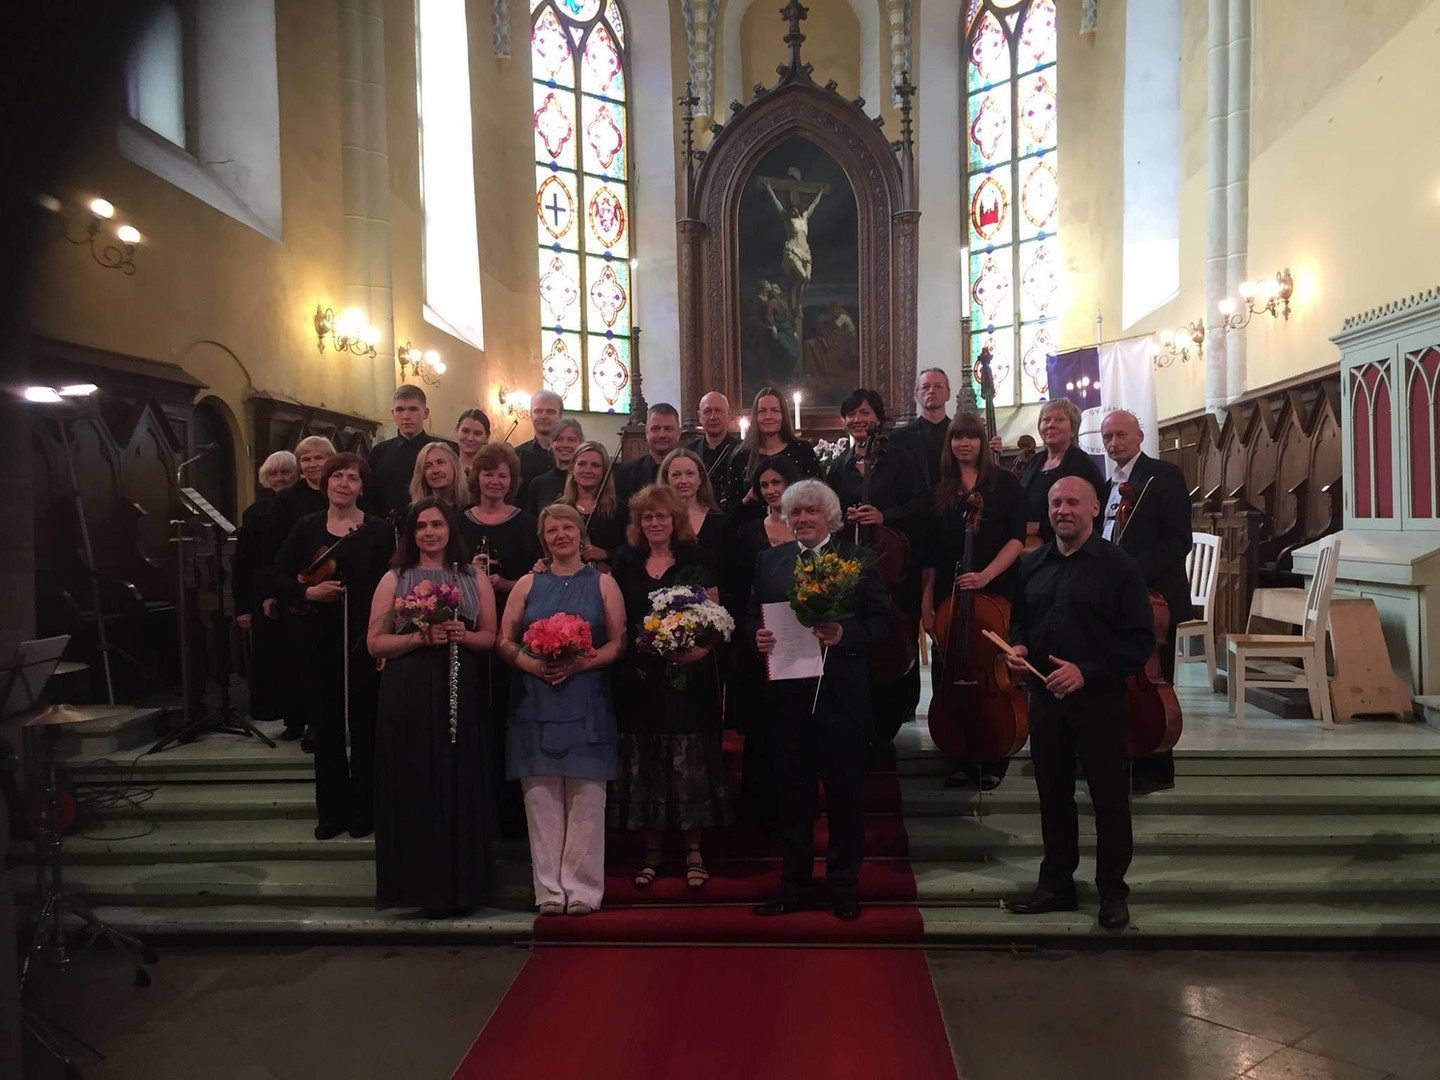 With Vidzemes Chamber Orchestra, flautiste Anete Toča, composer Indra Riše and conductor Andris Veismanis at Cēsis St.John's Church